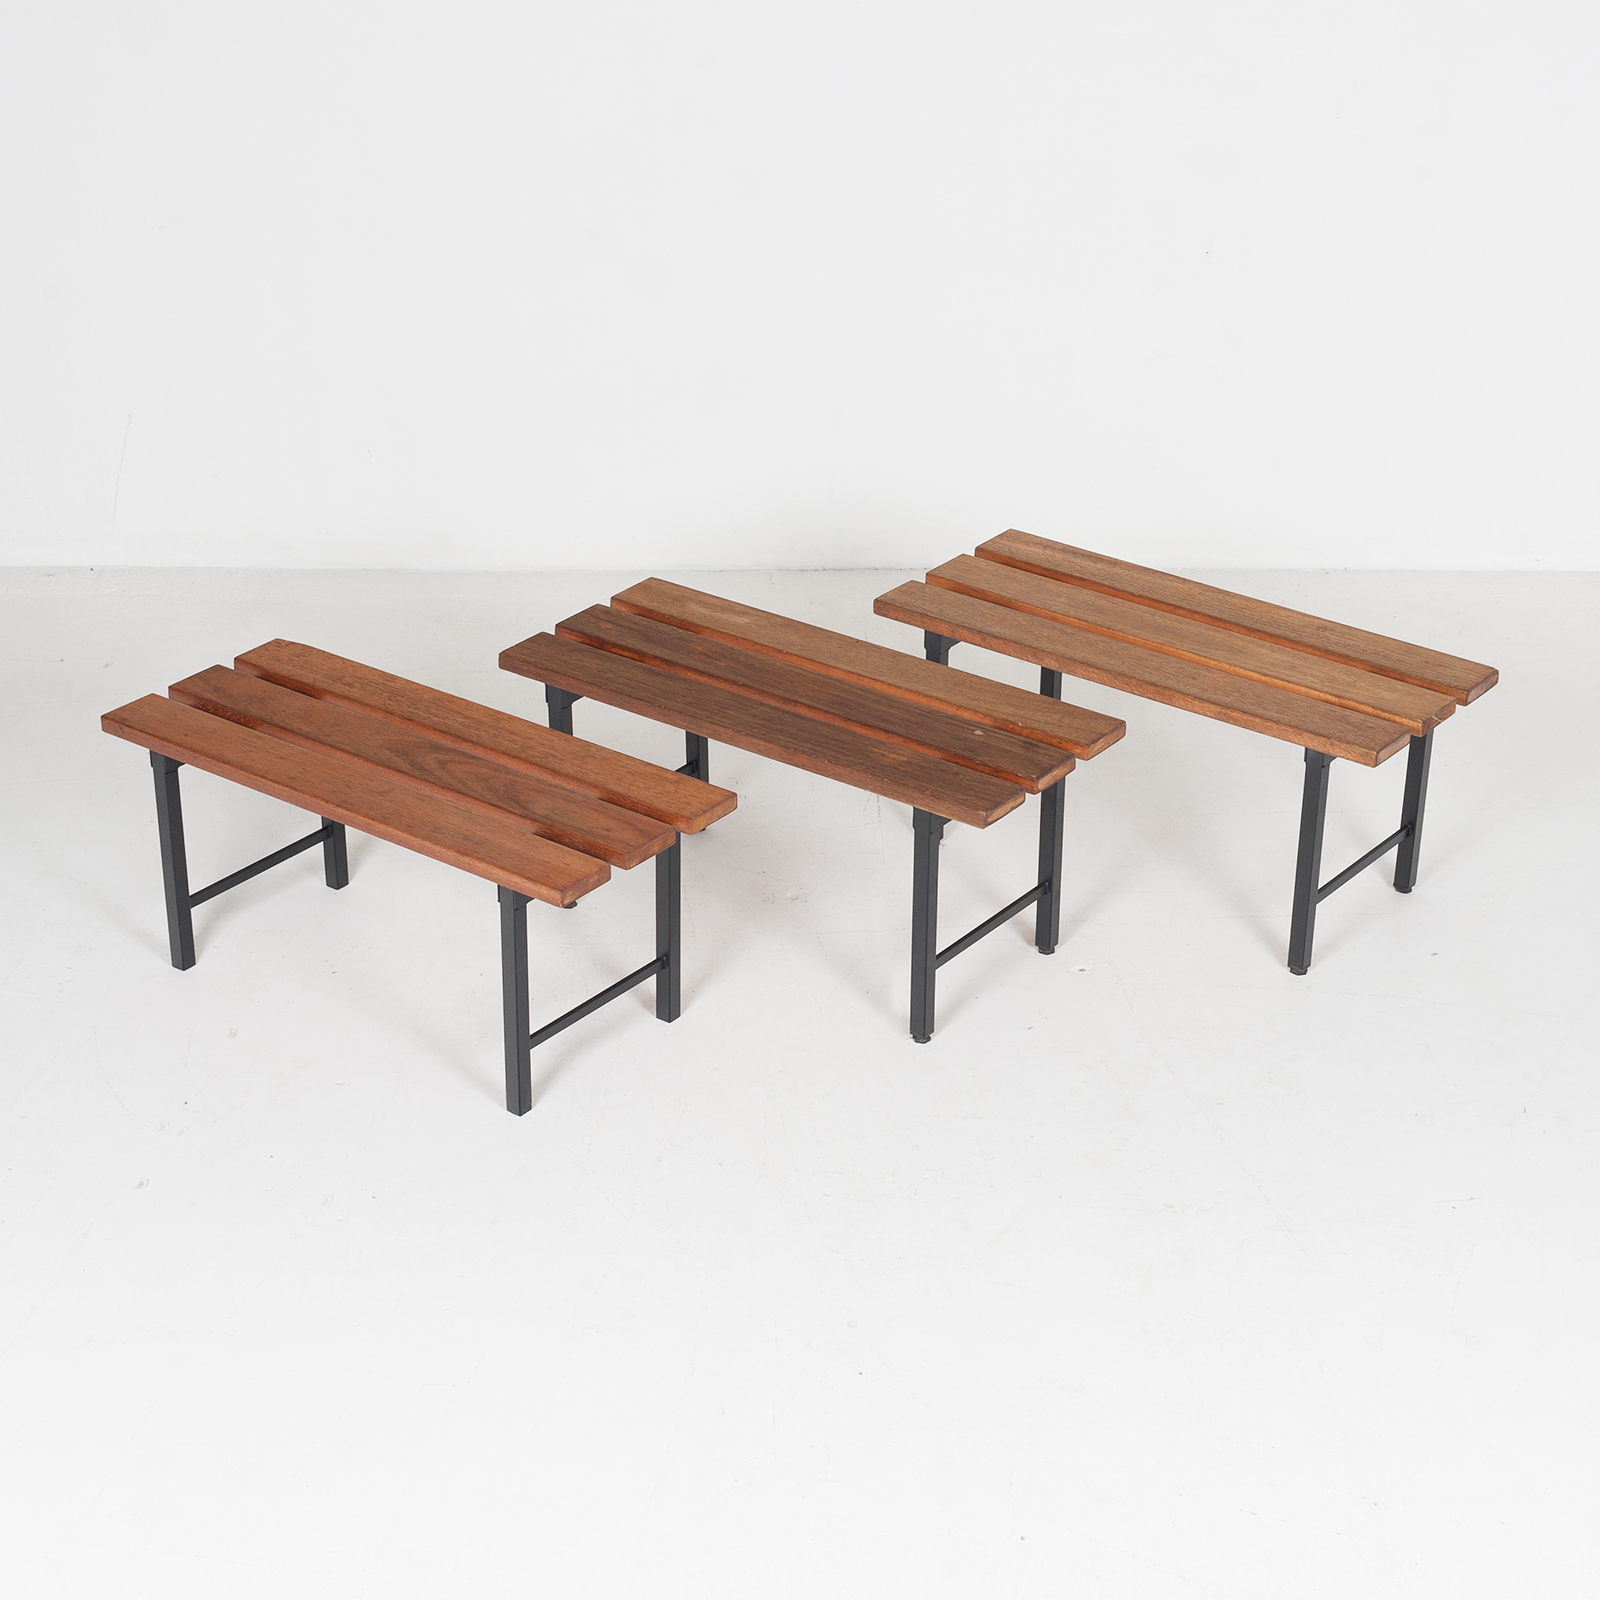 Two Seat Timber And Steel Bench, 1960s, The Netherlands54